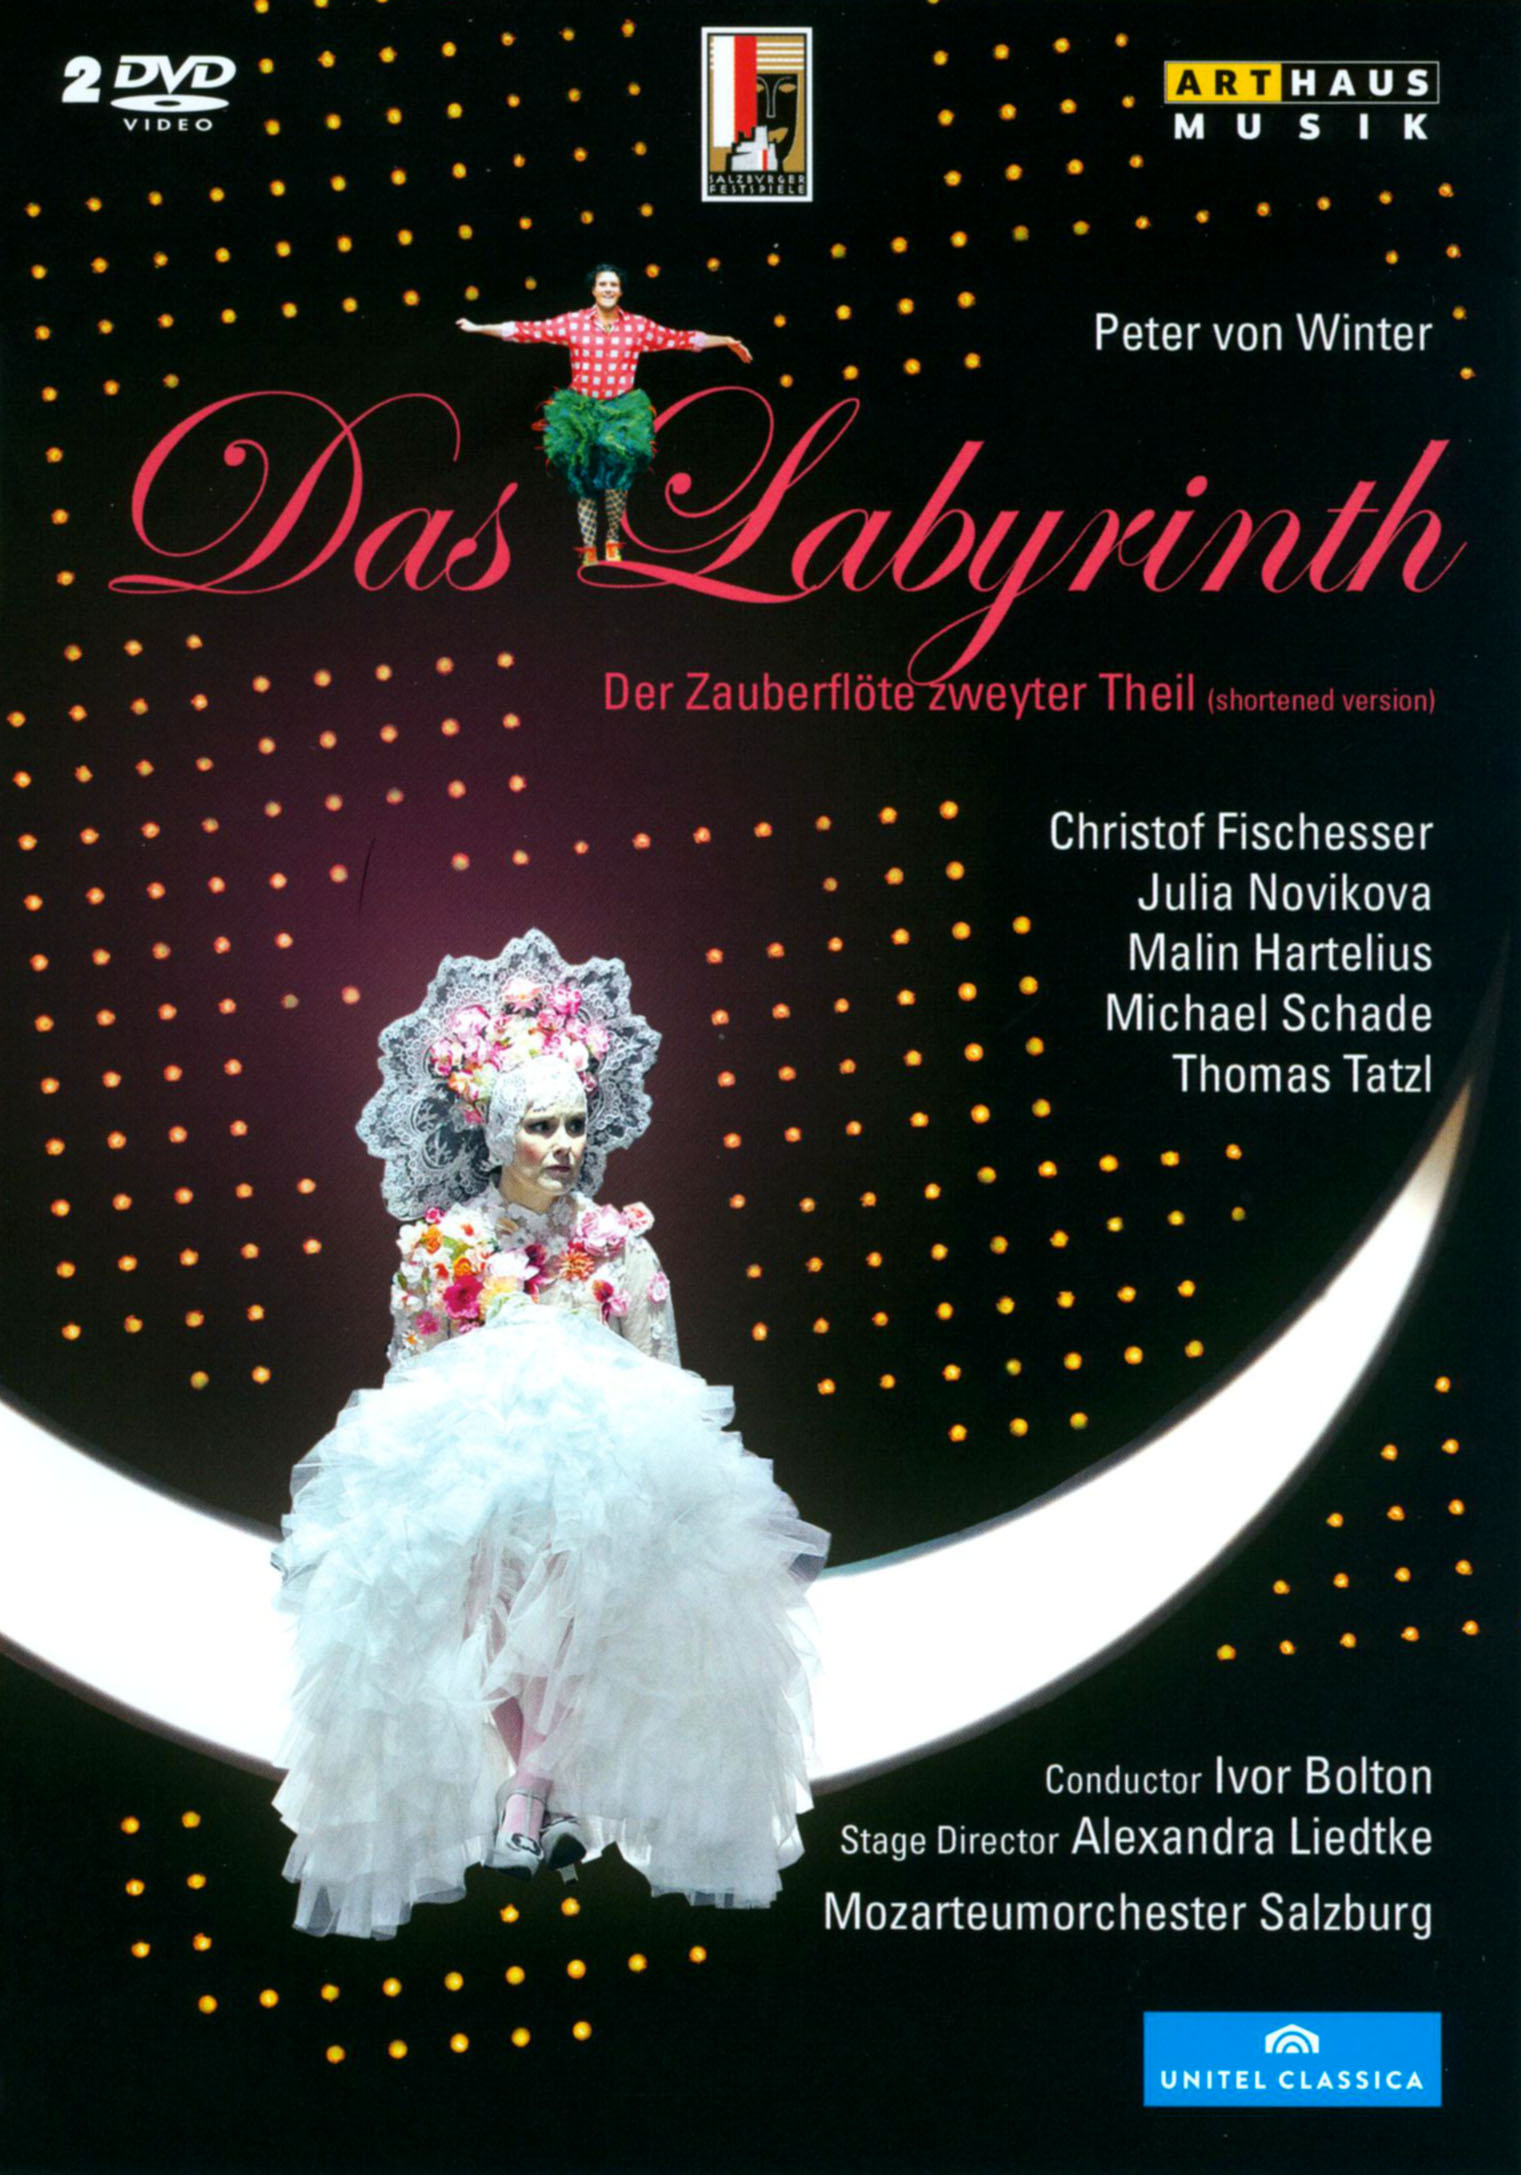 Das Labyrinth (Part Two of The Magic Flute)